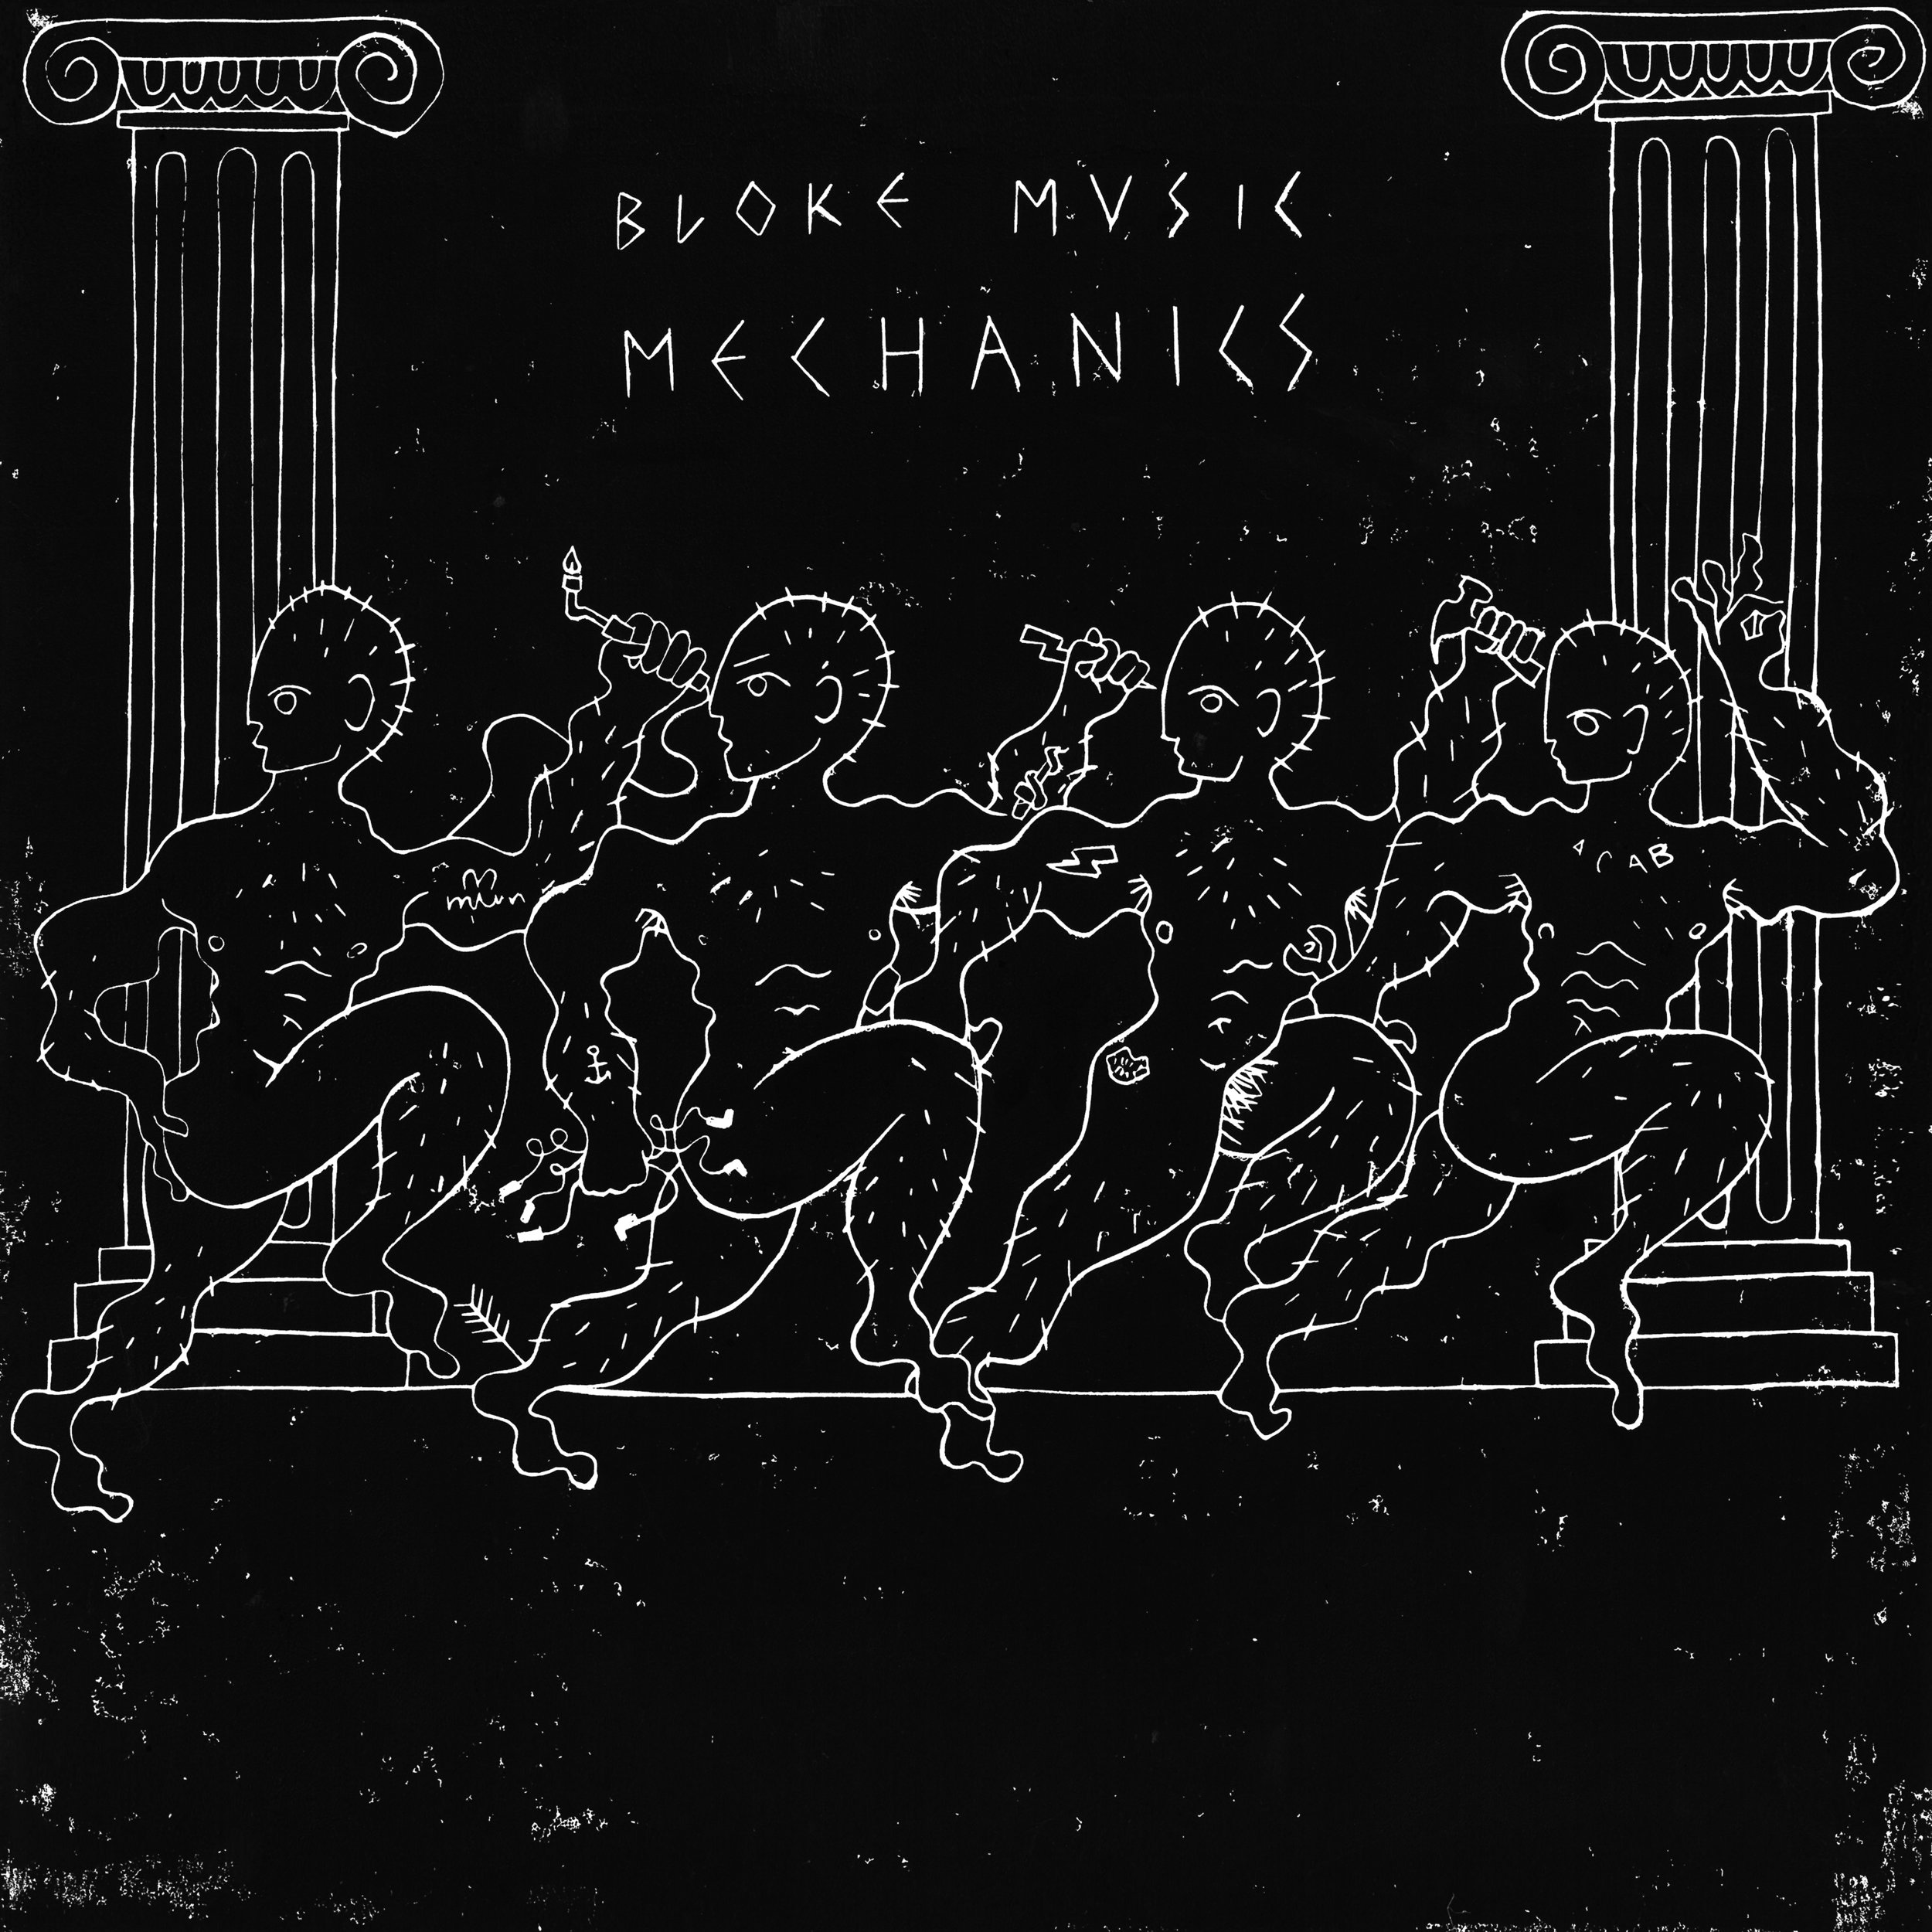 hight resolution of bloke music mechanics